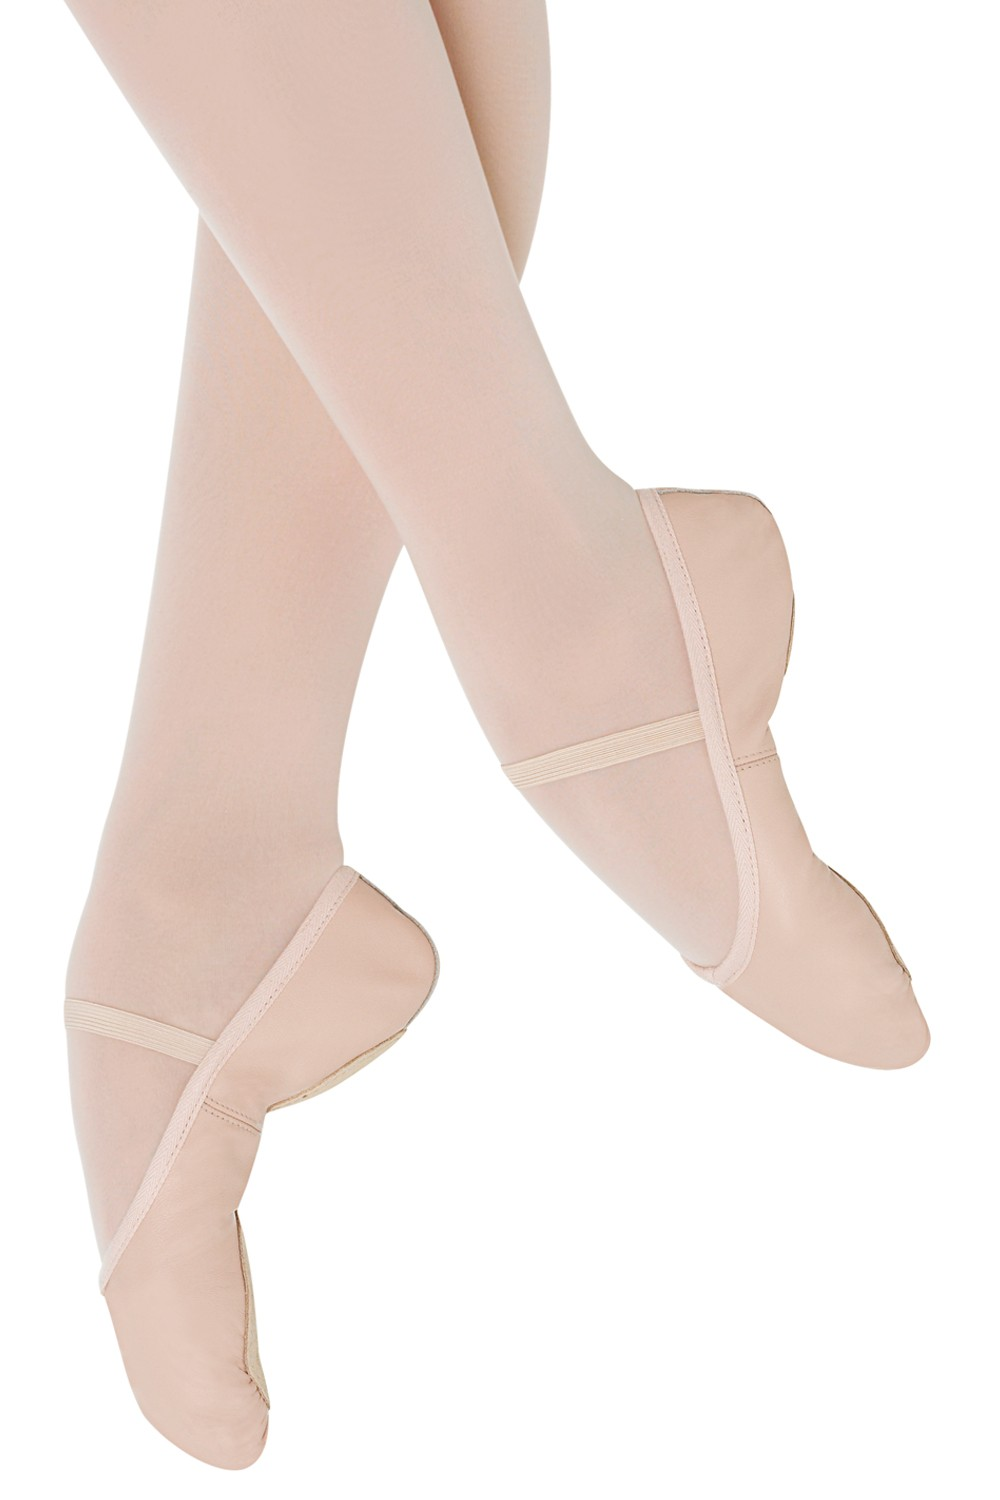 S0202l Women's Ballet Shoes